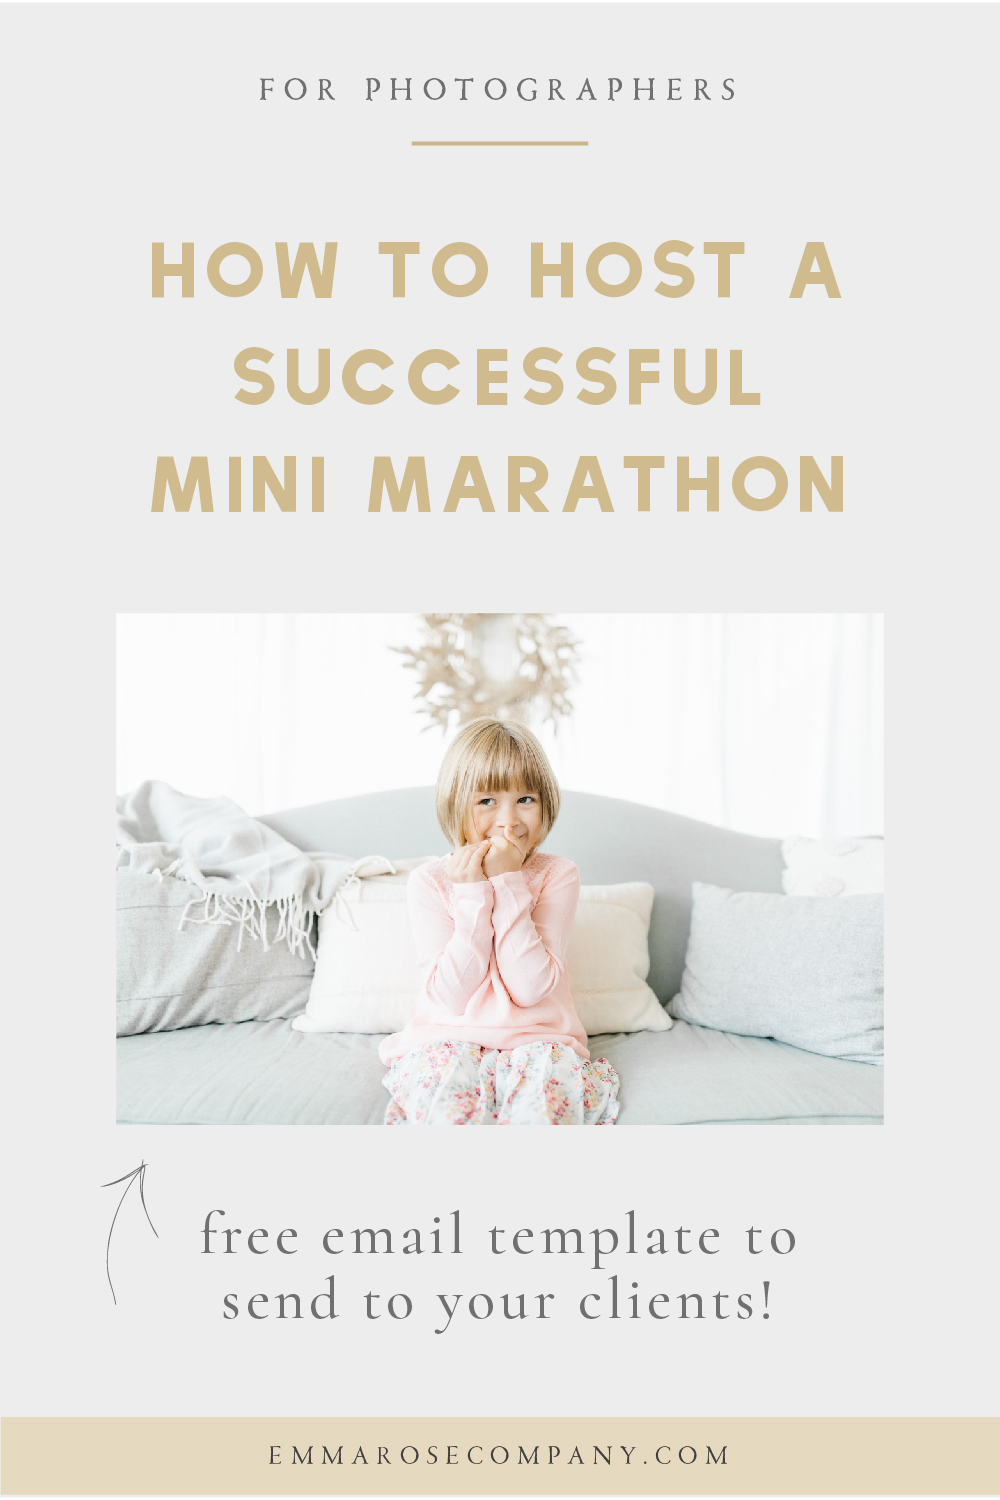 If you're a photographer looking to offer mini sessions to clients, or changing the way you do them, this post was created to shed some light for you on what worked and what did not work from my own experience as a portrait photographer.  If you want to host a successful mini marathon, this post is for you!  #tipsforphotographers #minisession